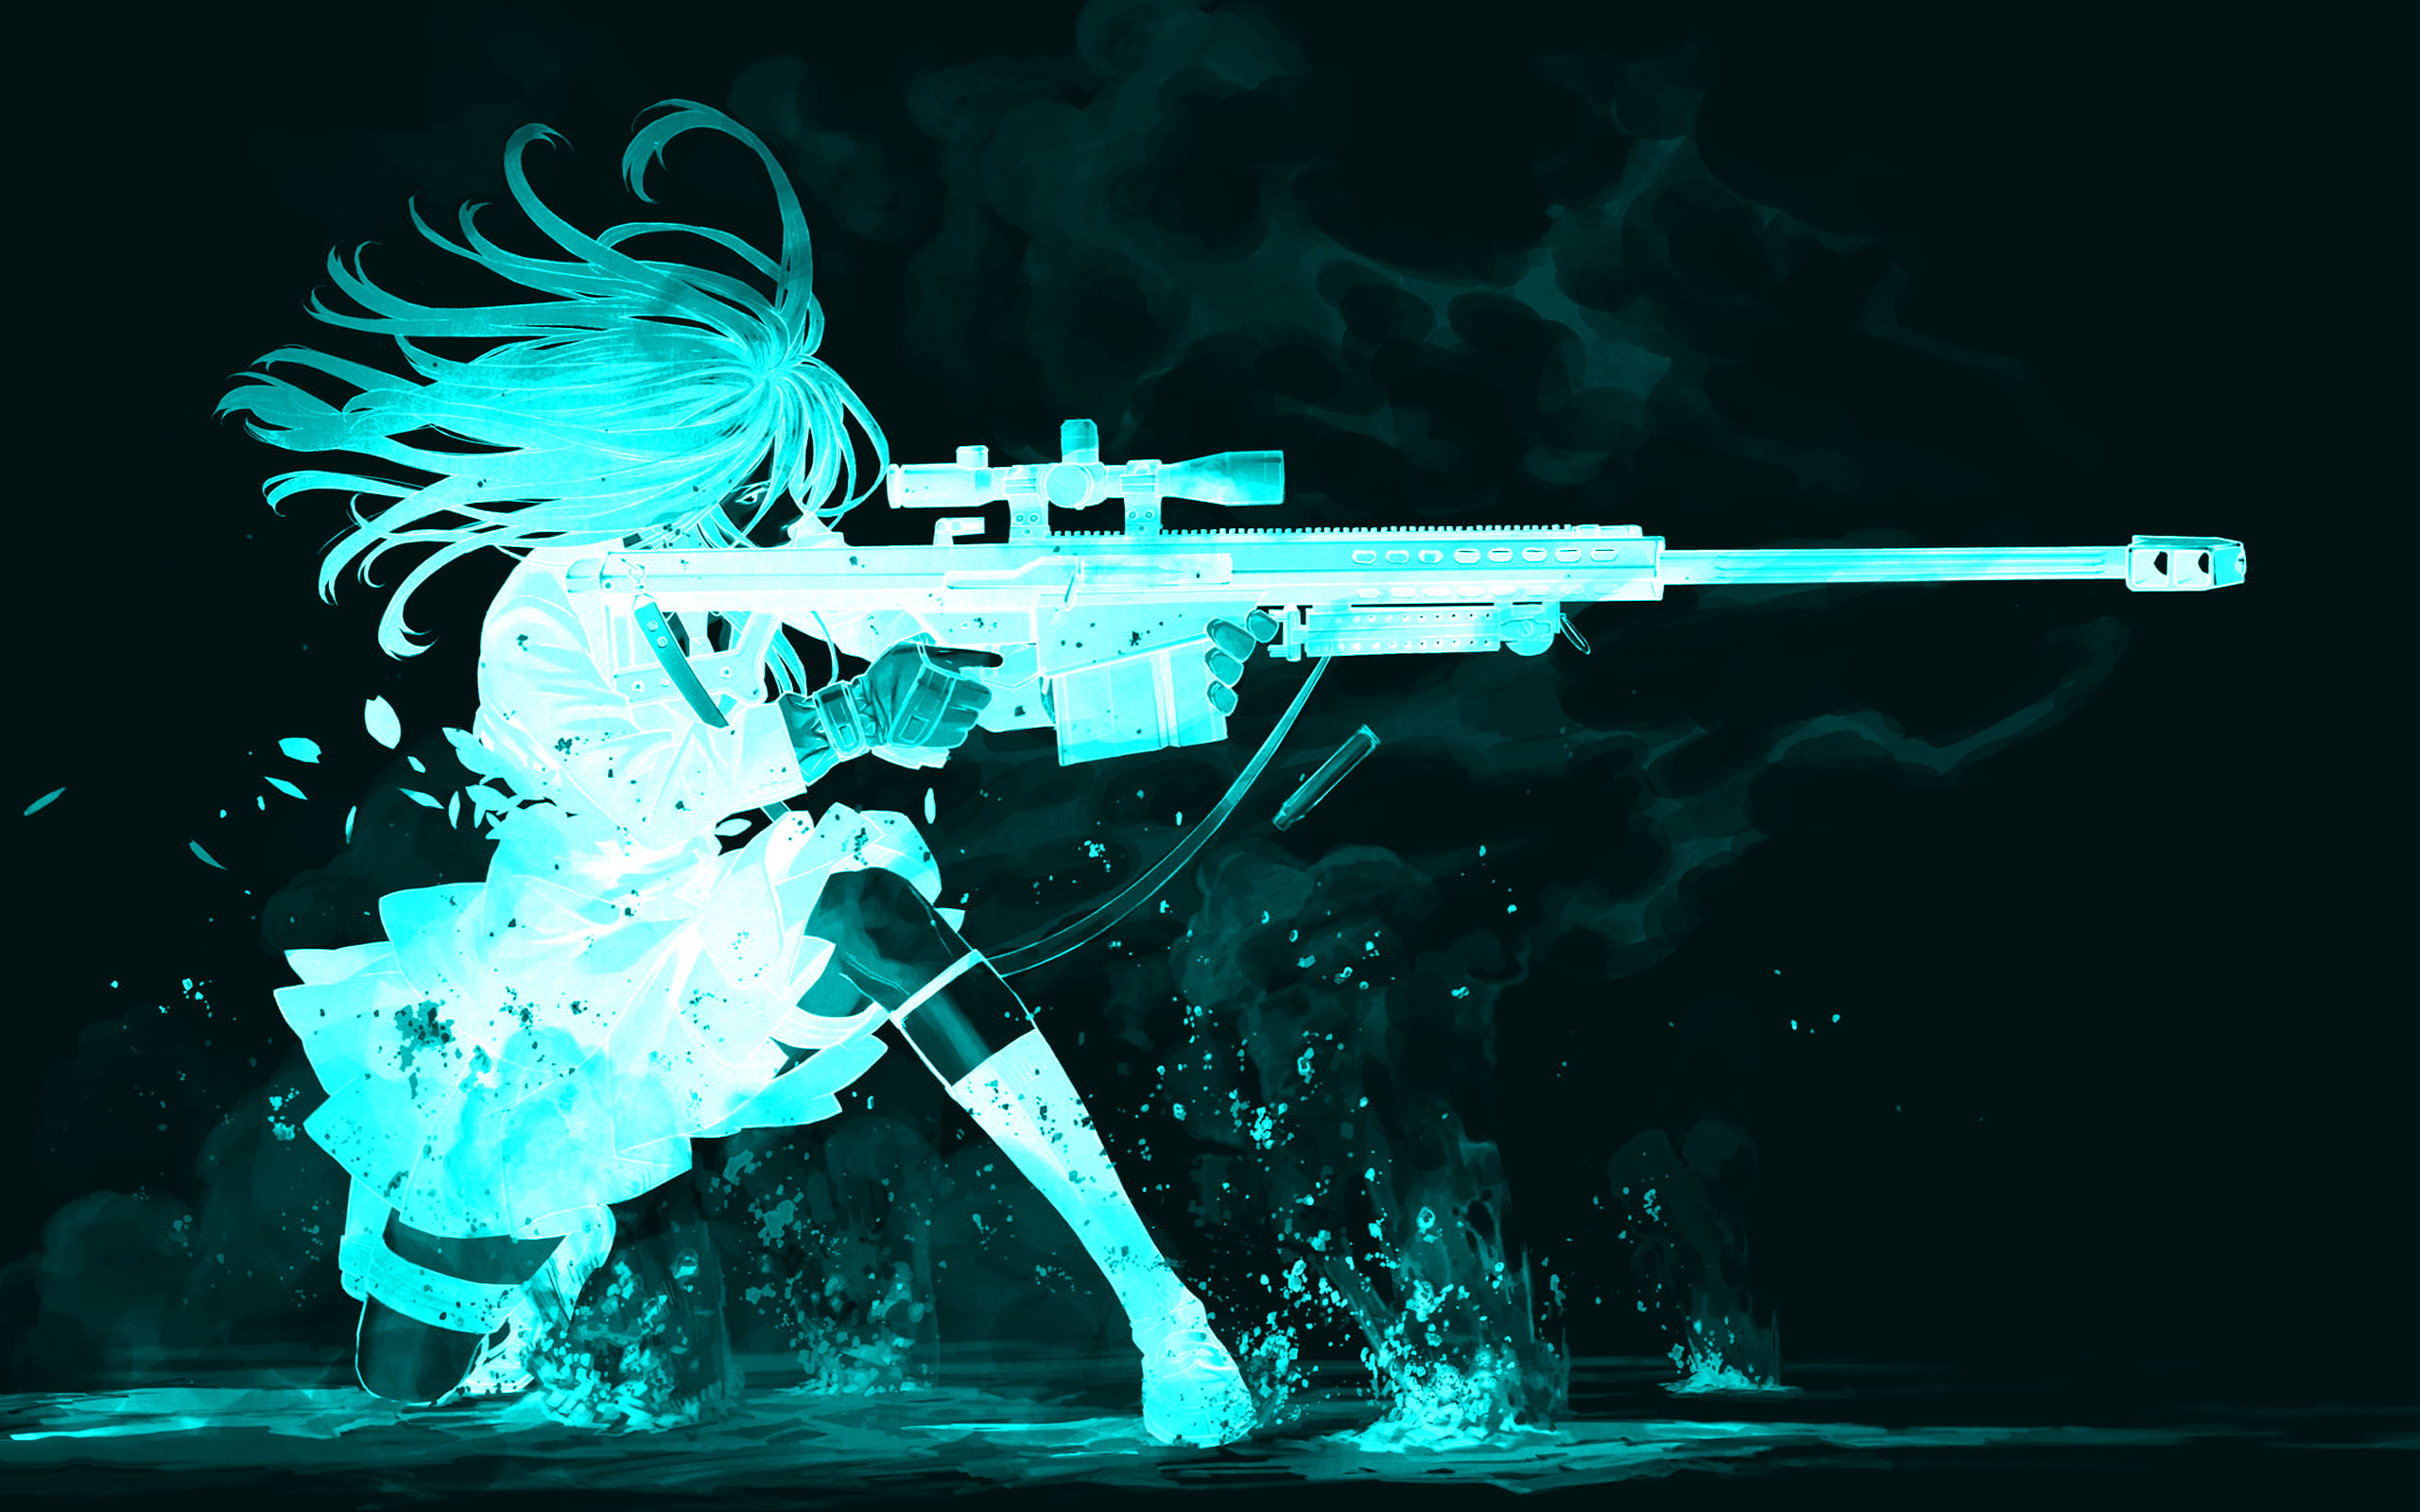 cool anime pc wallpapers - photo #27